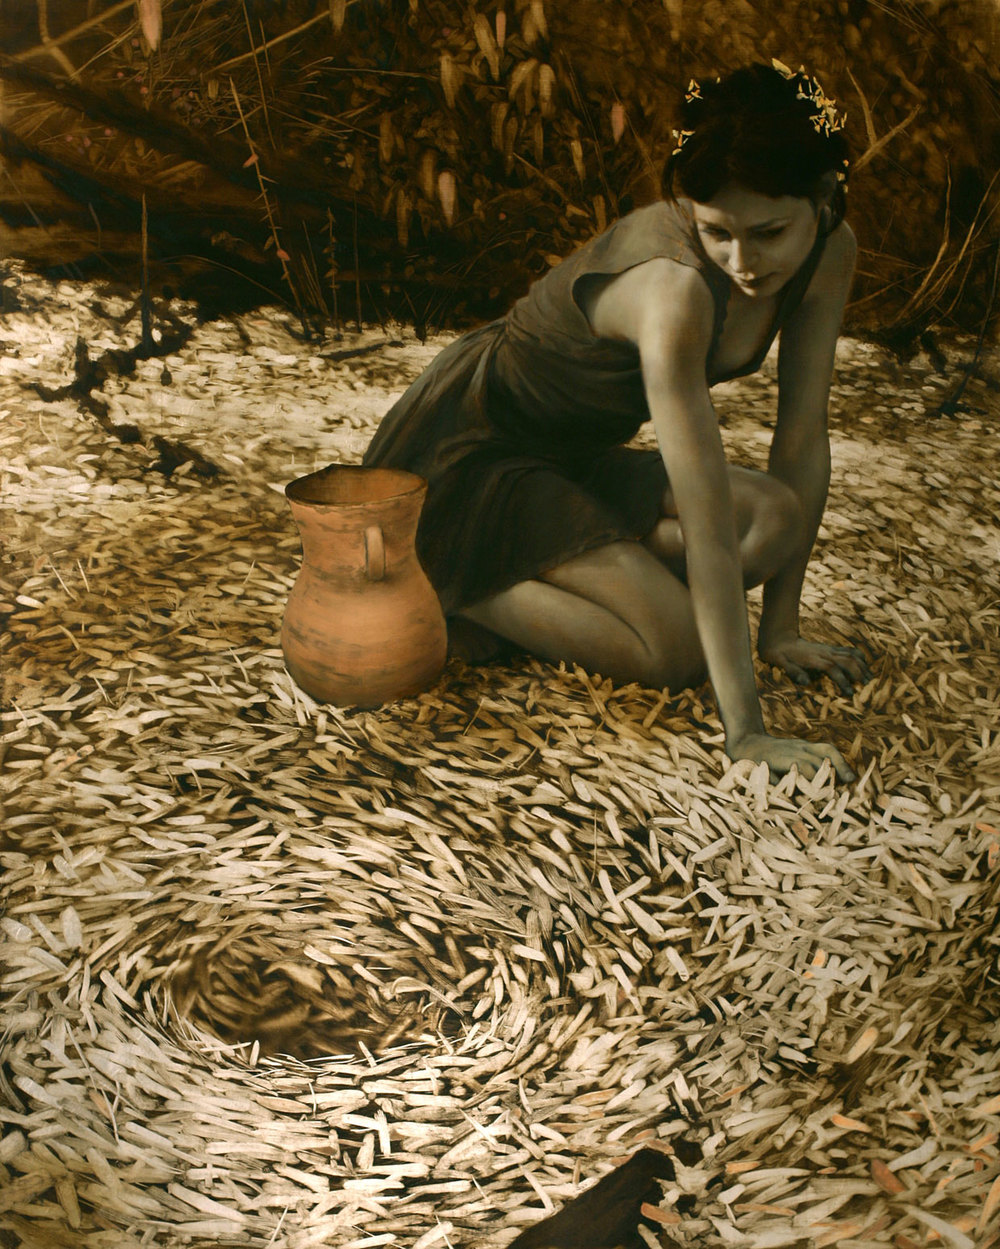 The Watering Hole , 2010. Oil, gold, and silver on linen. 45 x 36 inches. Private collection.